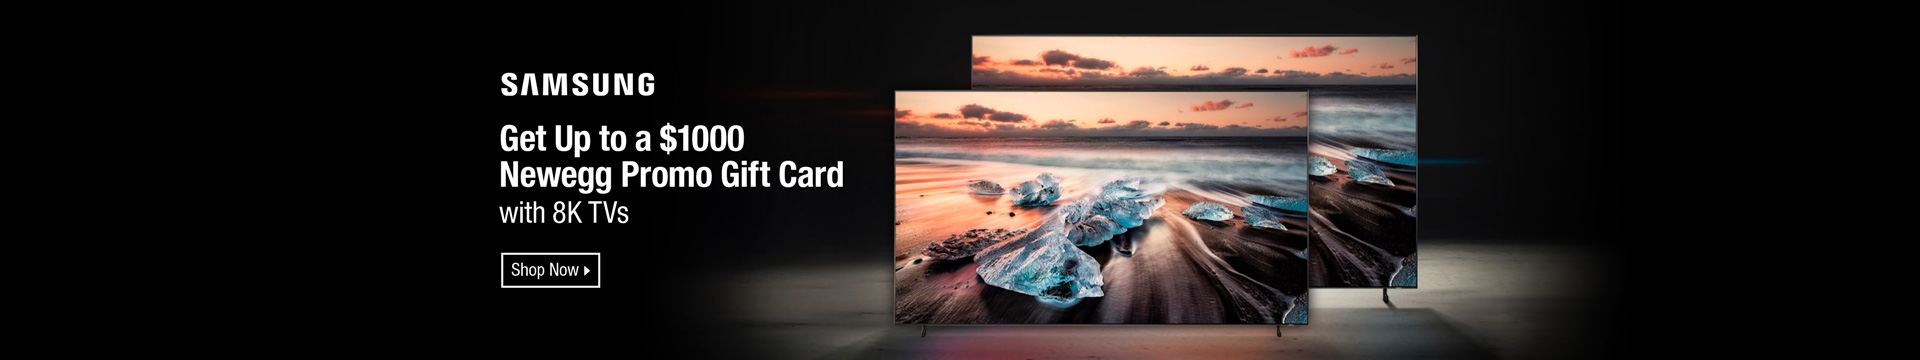 Get Up to $1000 Newegg Promo Gift Card